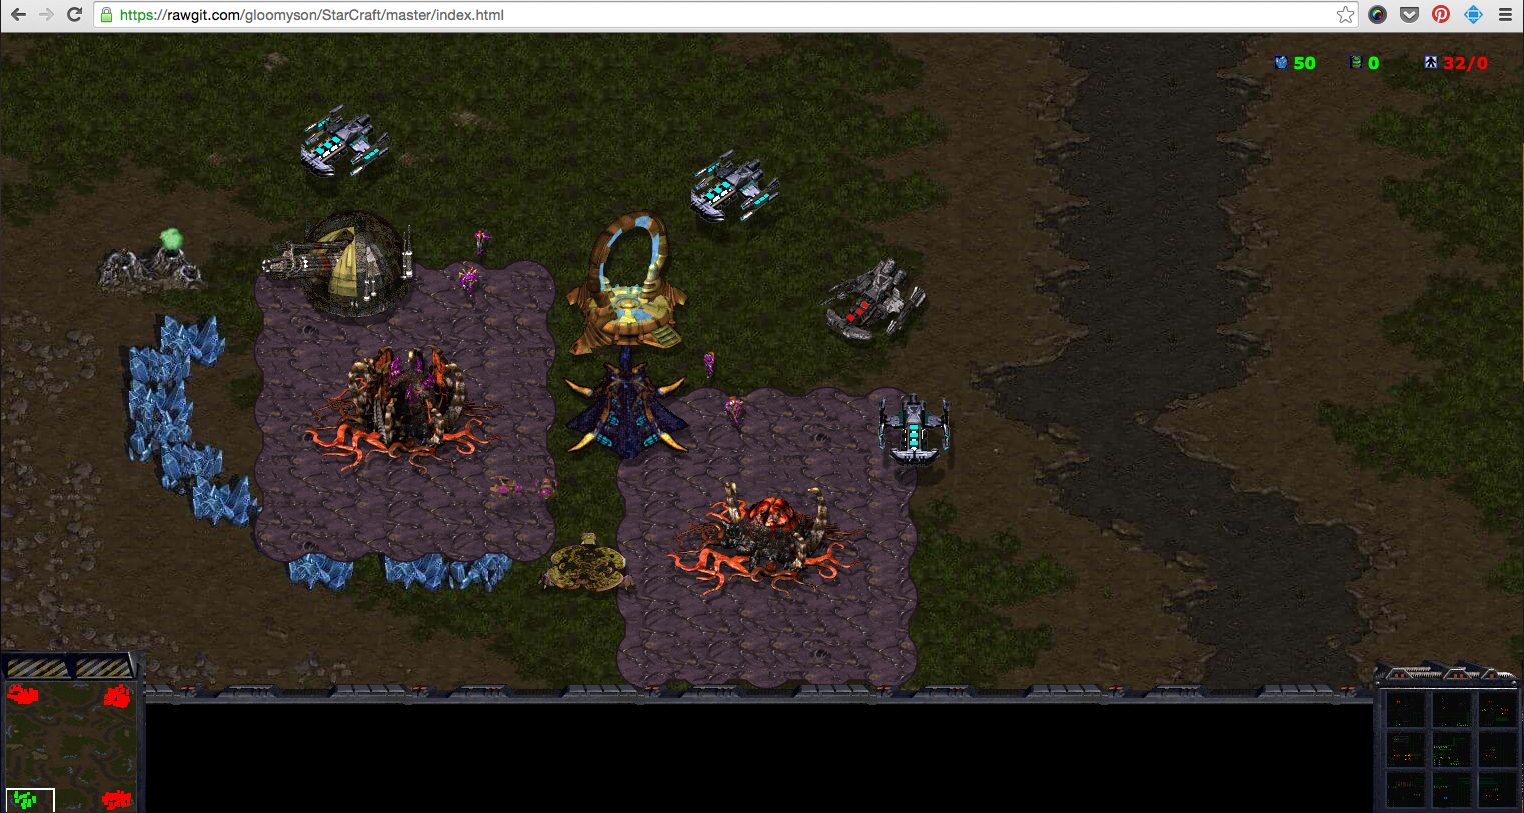 starcraft-chrome